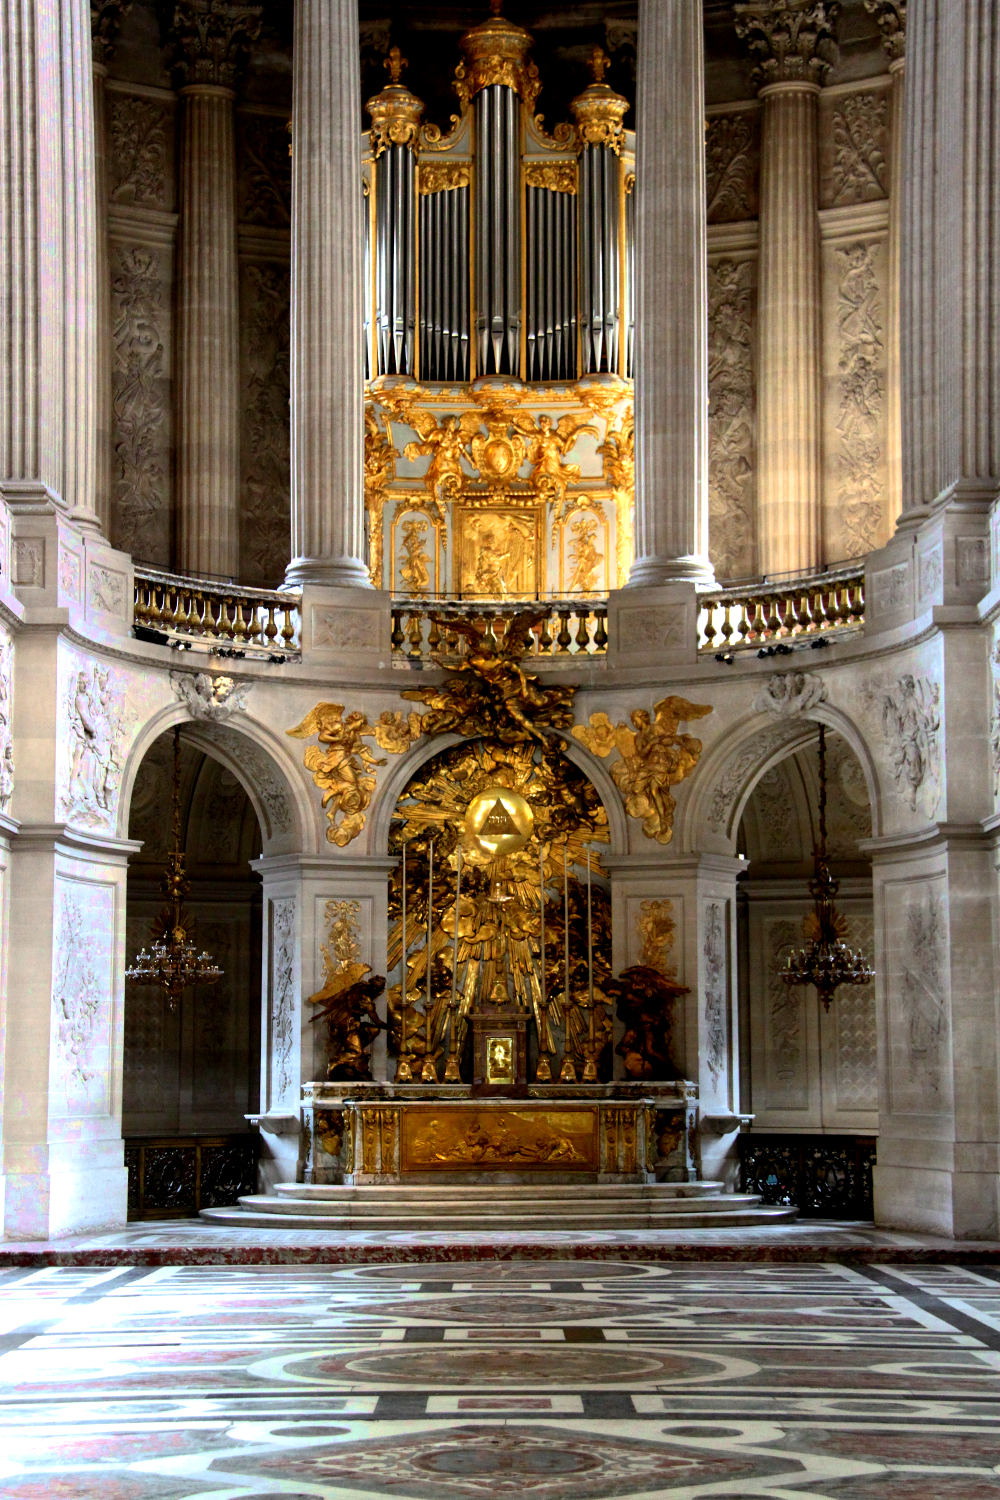 The impressive organ at the Royal Chapel, Versailles, France